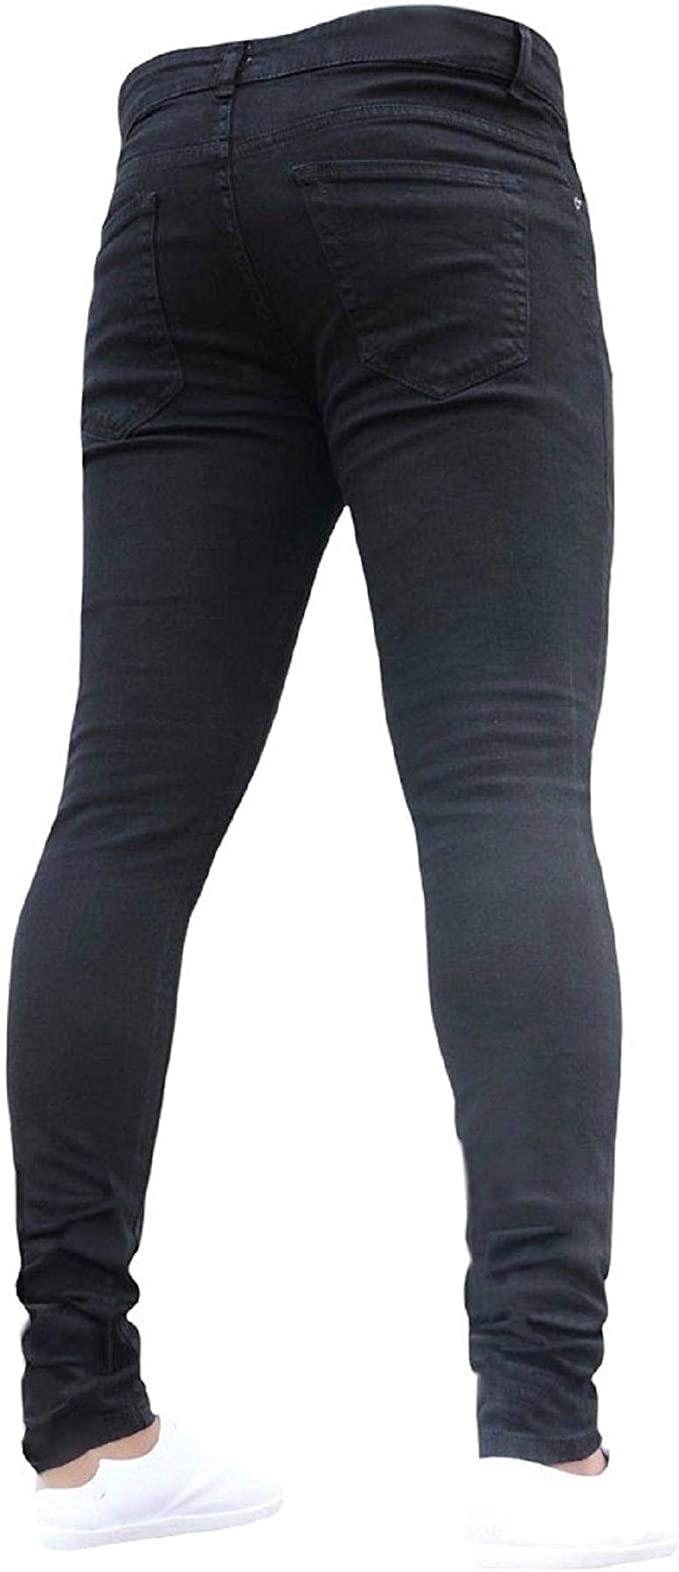 Womens Slim Fit Comfy Stretchy Crumpled Cotton Bootcut Pants Skinny Jeans Mid Waist Pencil Pants